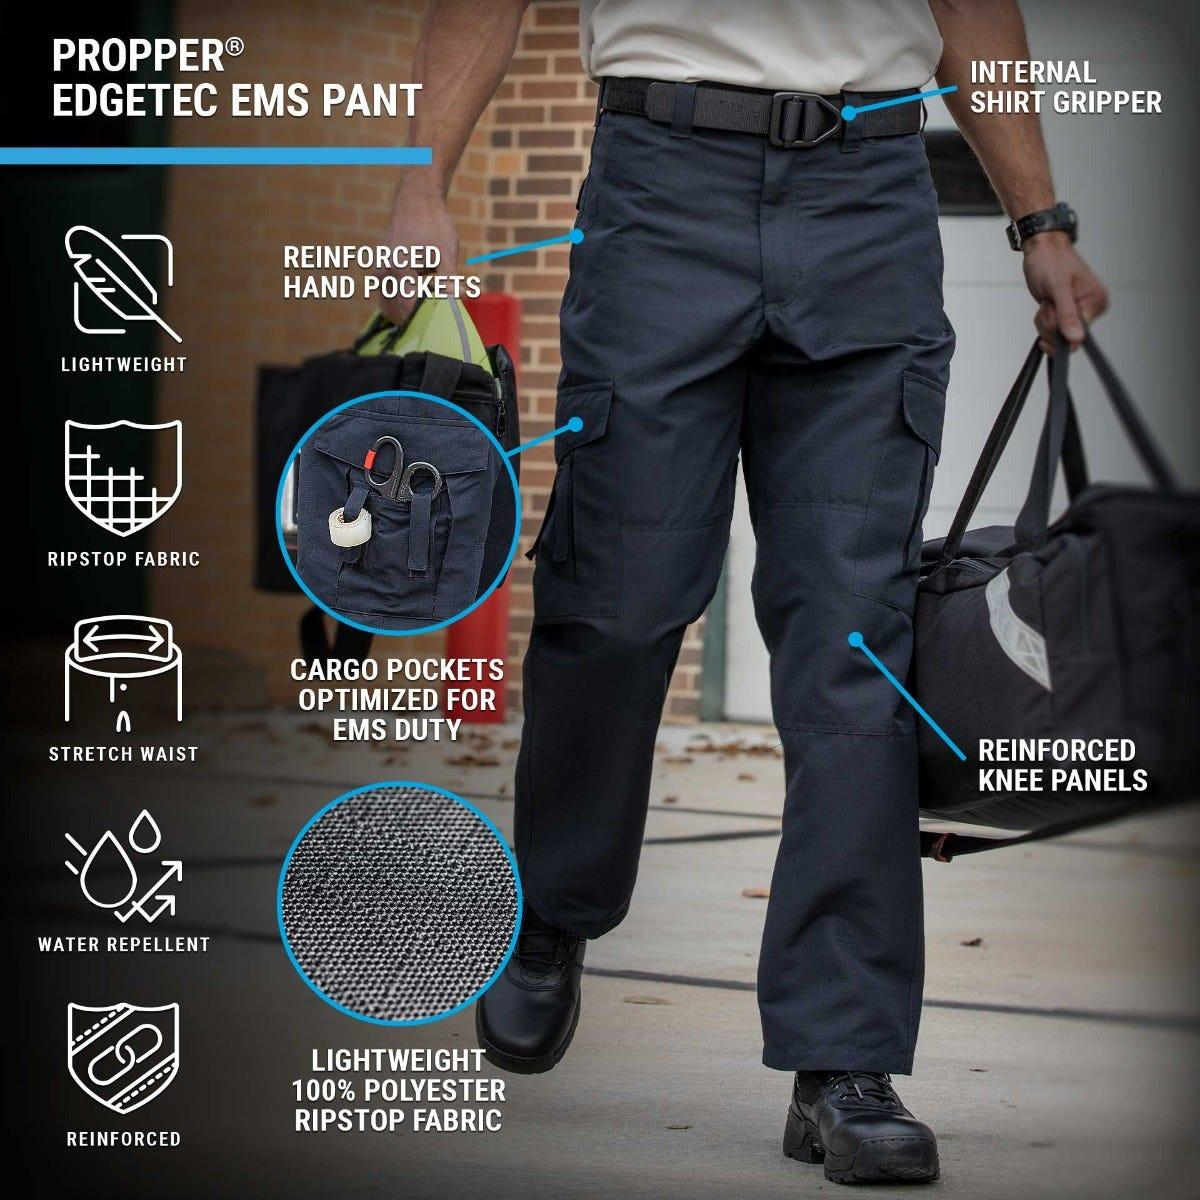 The EdgeTec EMS Pant showcases cargo pockets with scissor straps and reinforced knees in a water-resistant lightweight ripstop fabric for EMTs.